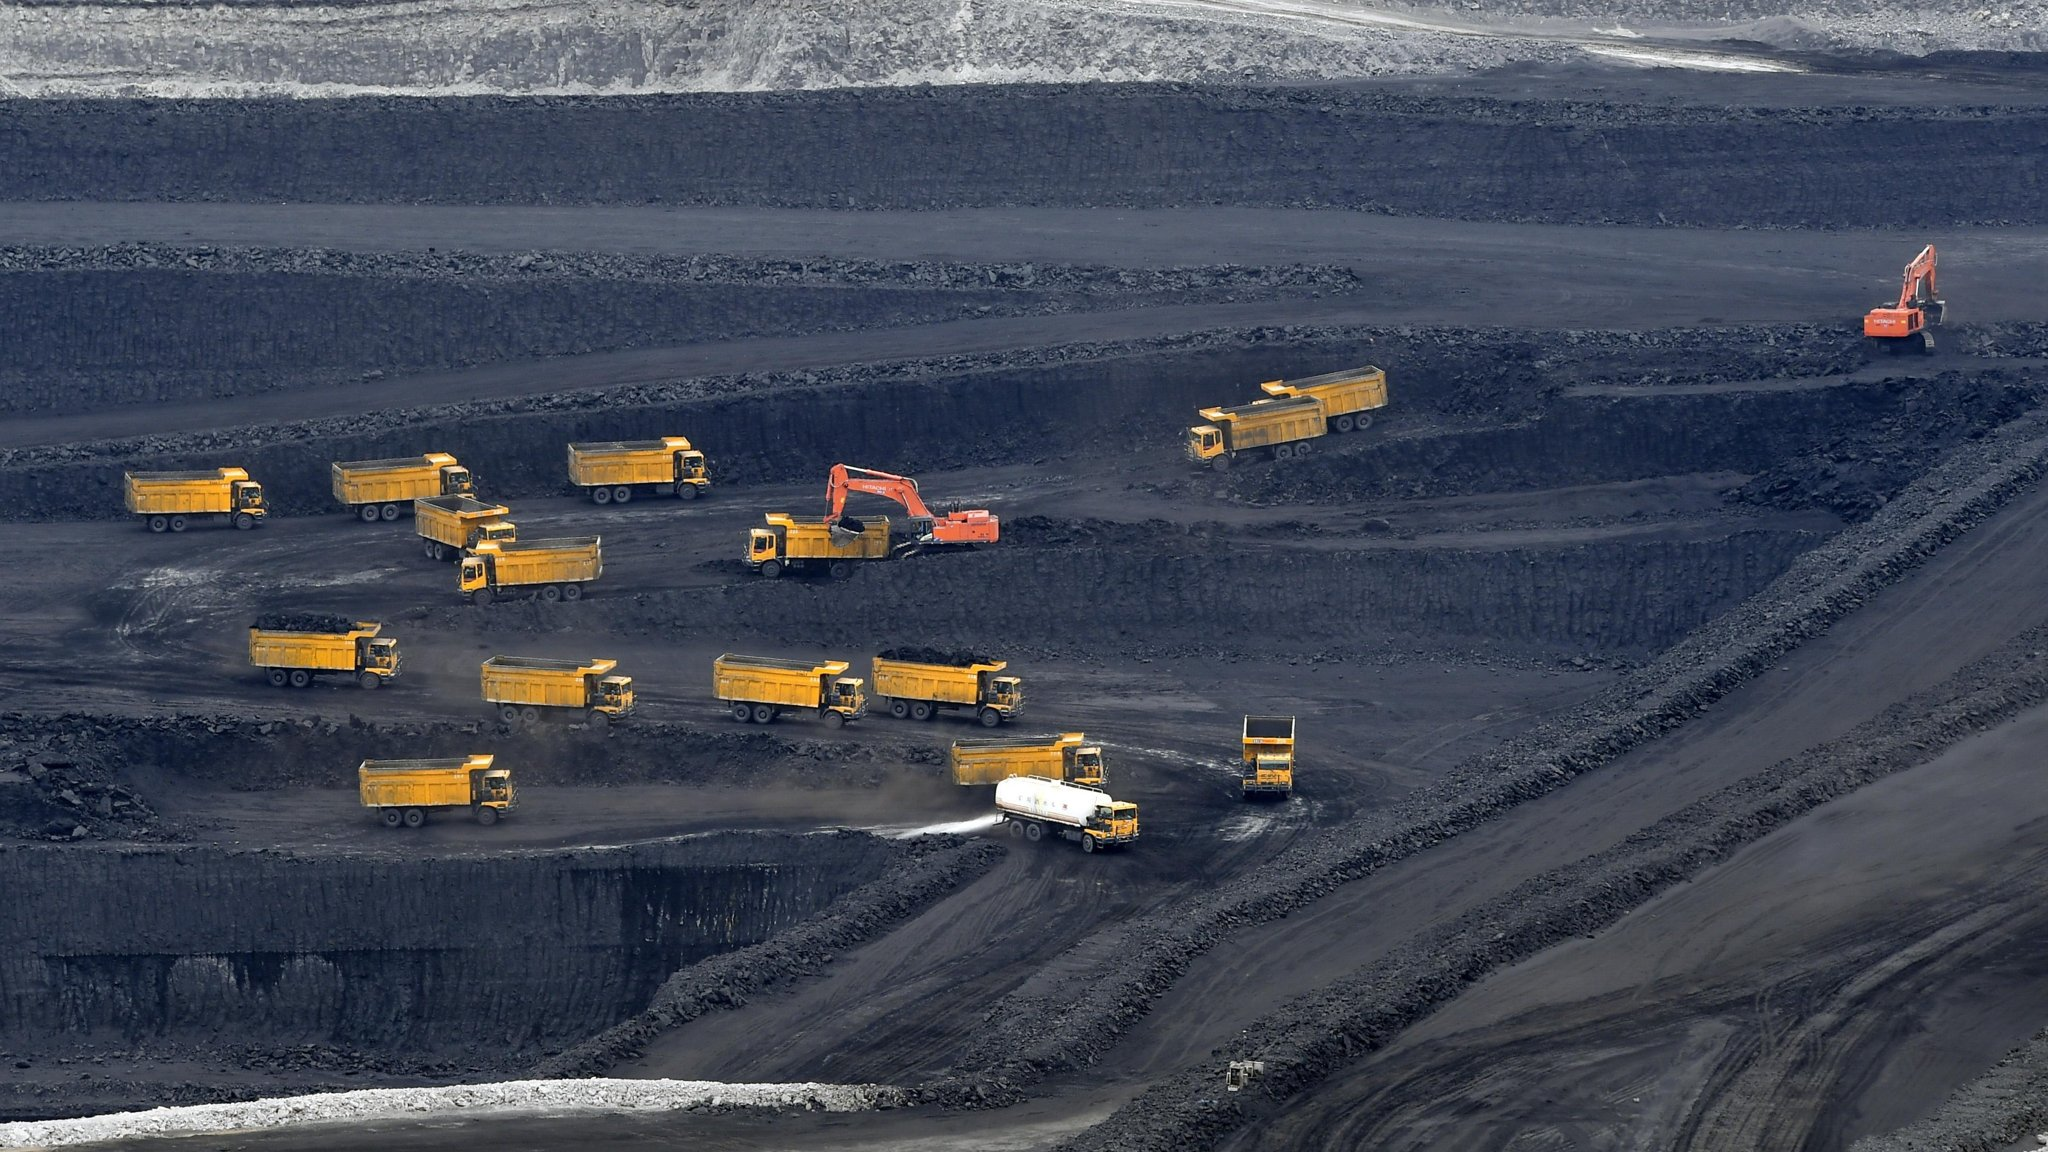 China ramps up coal power in face of emissions efforts